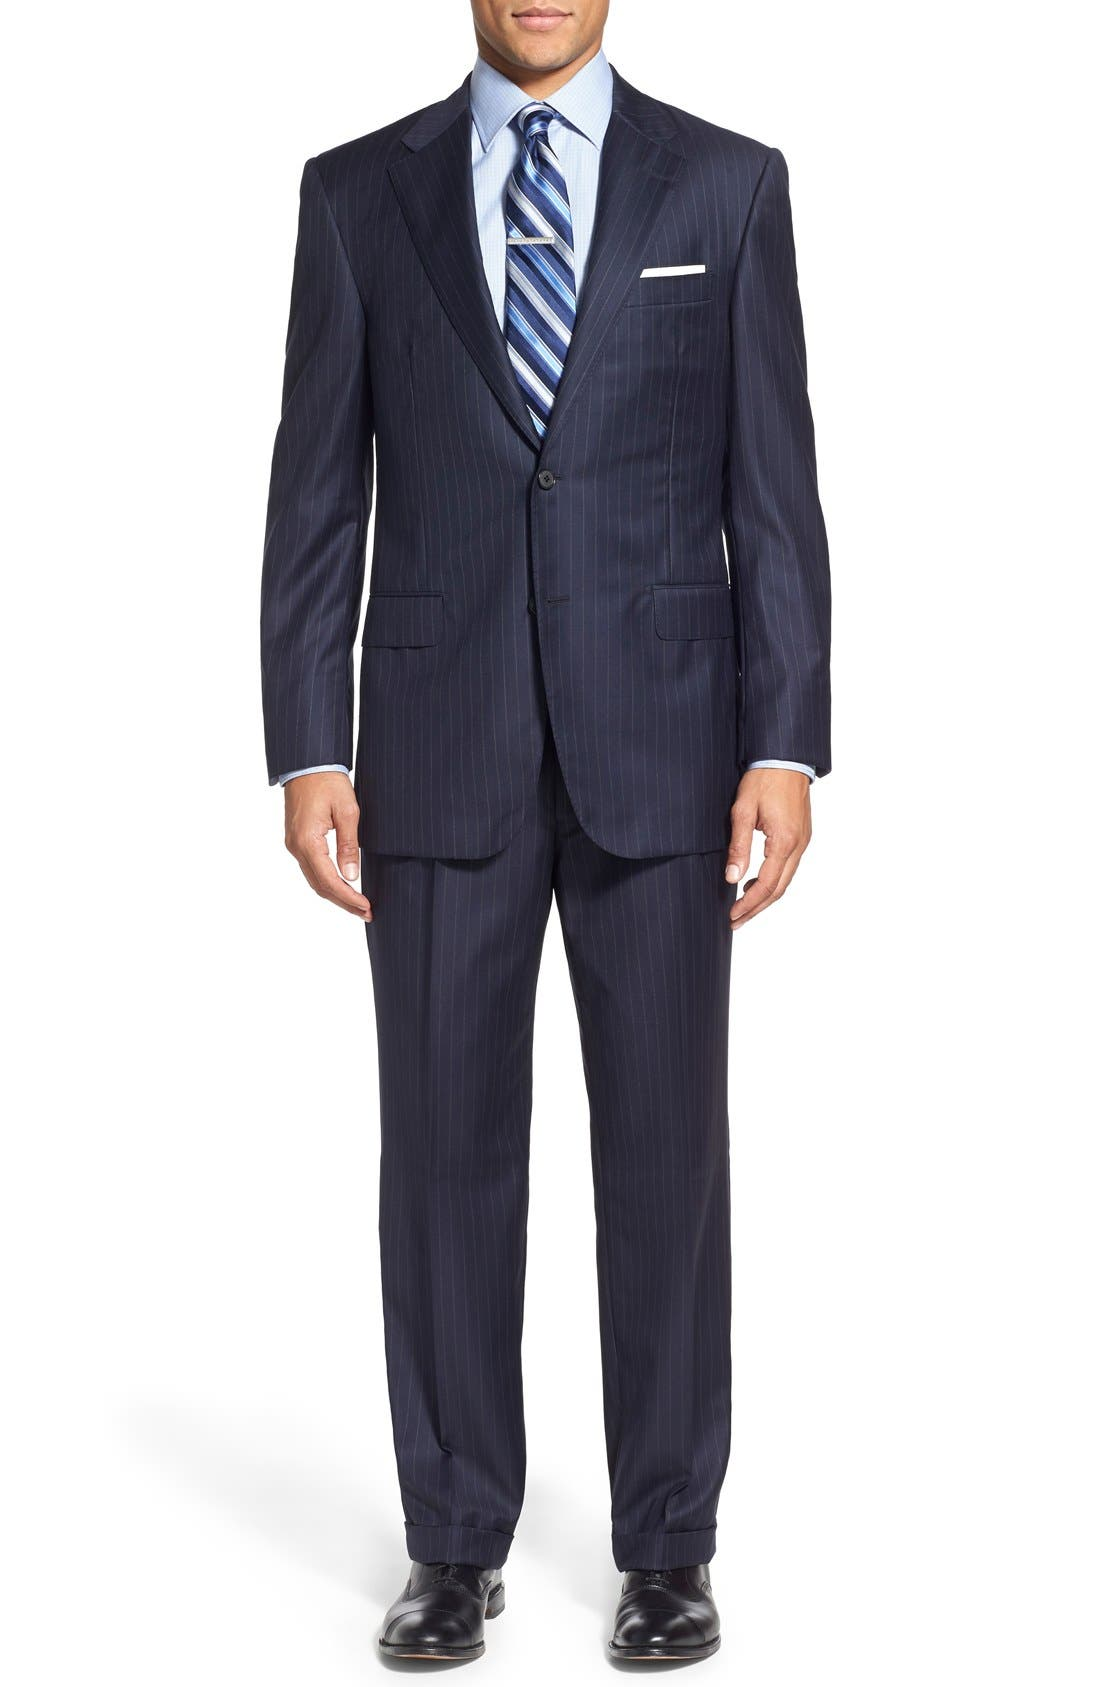 Alternate Image 1 Selected - Hickey Freeman 'Beacon - B Series' Classic Fit Stripe Wool Suit